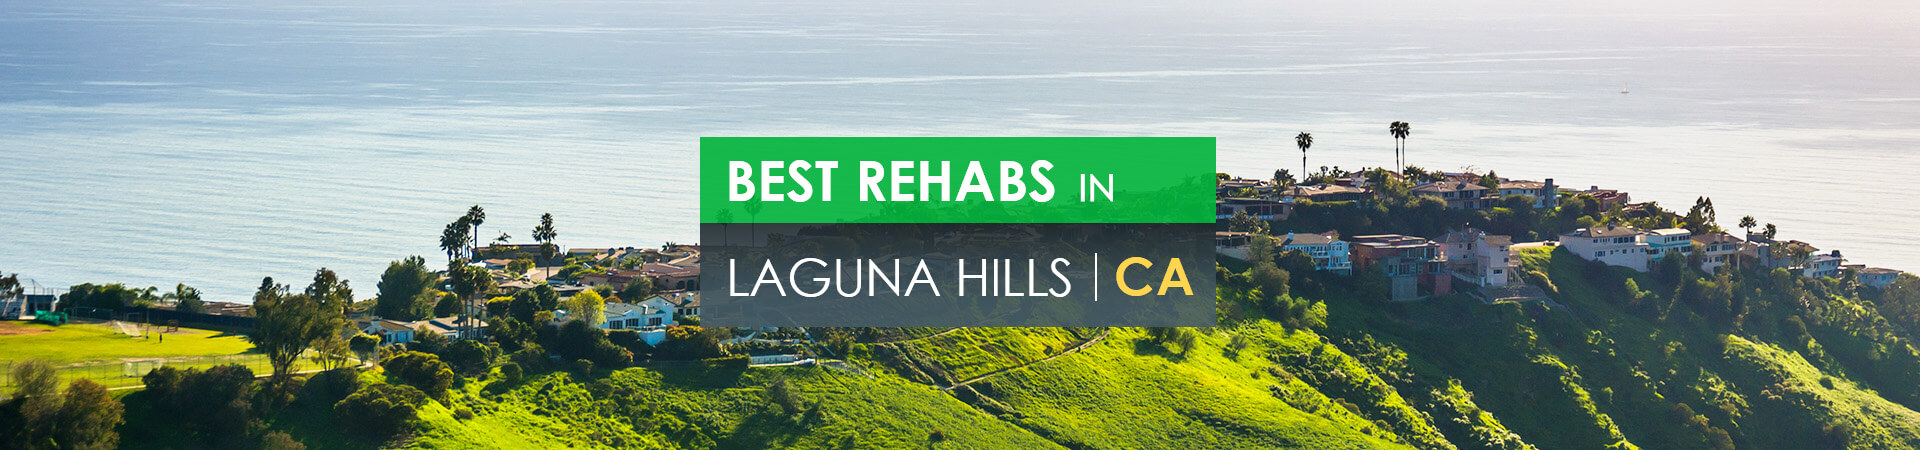 Best rehabs in Laguna Hills, CA